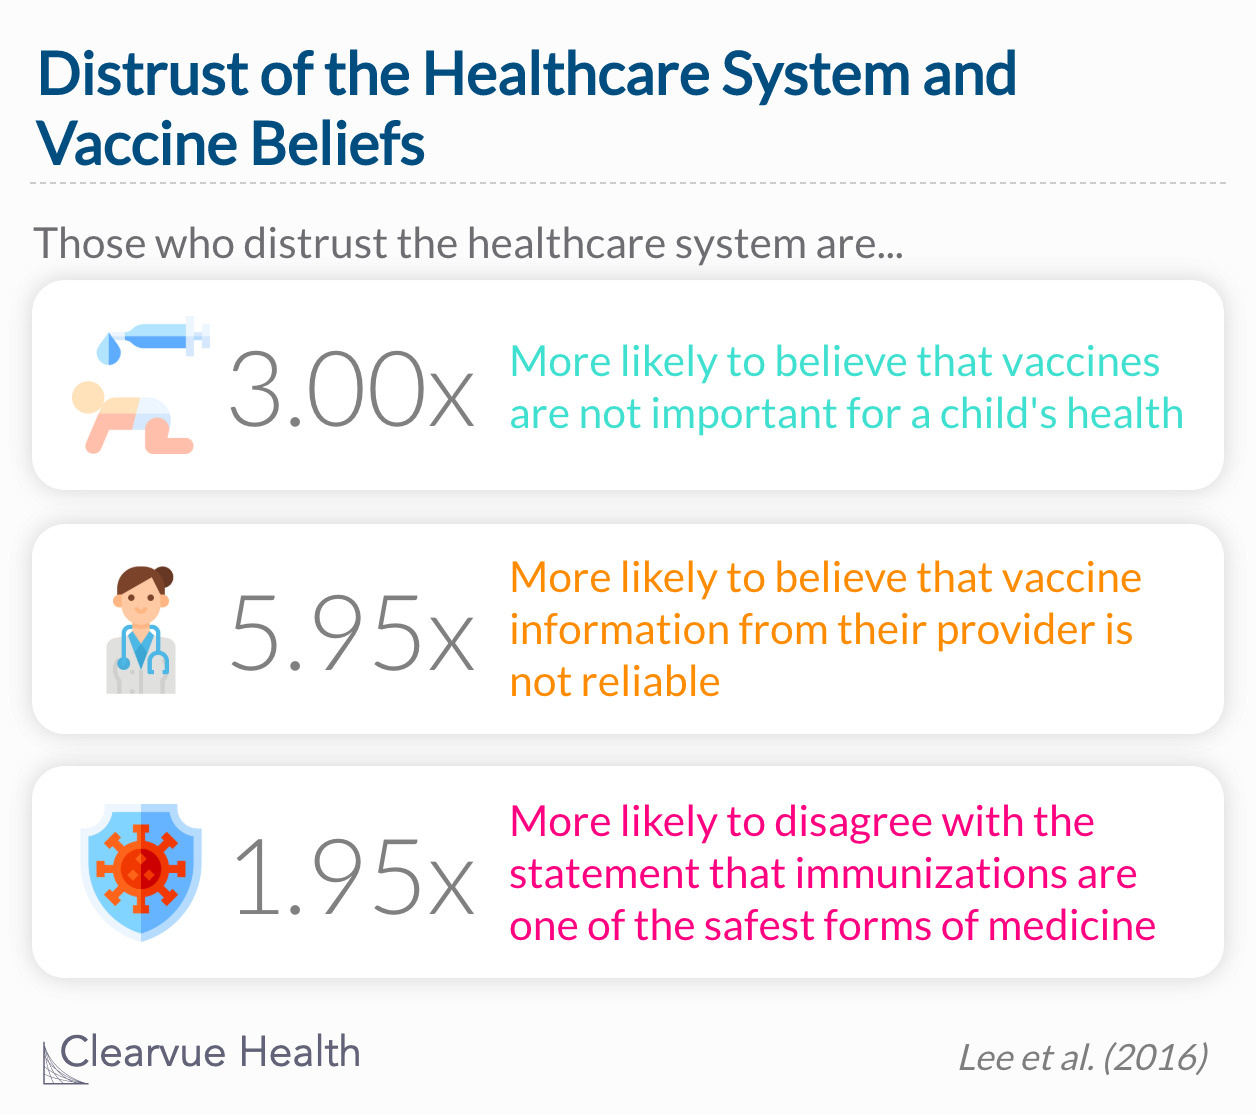 Beliefs of those who distrust in the healthcare system